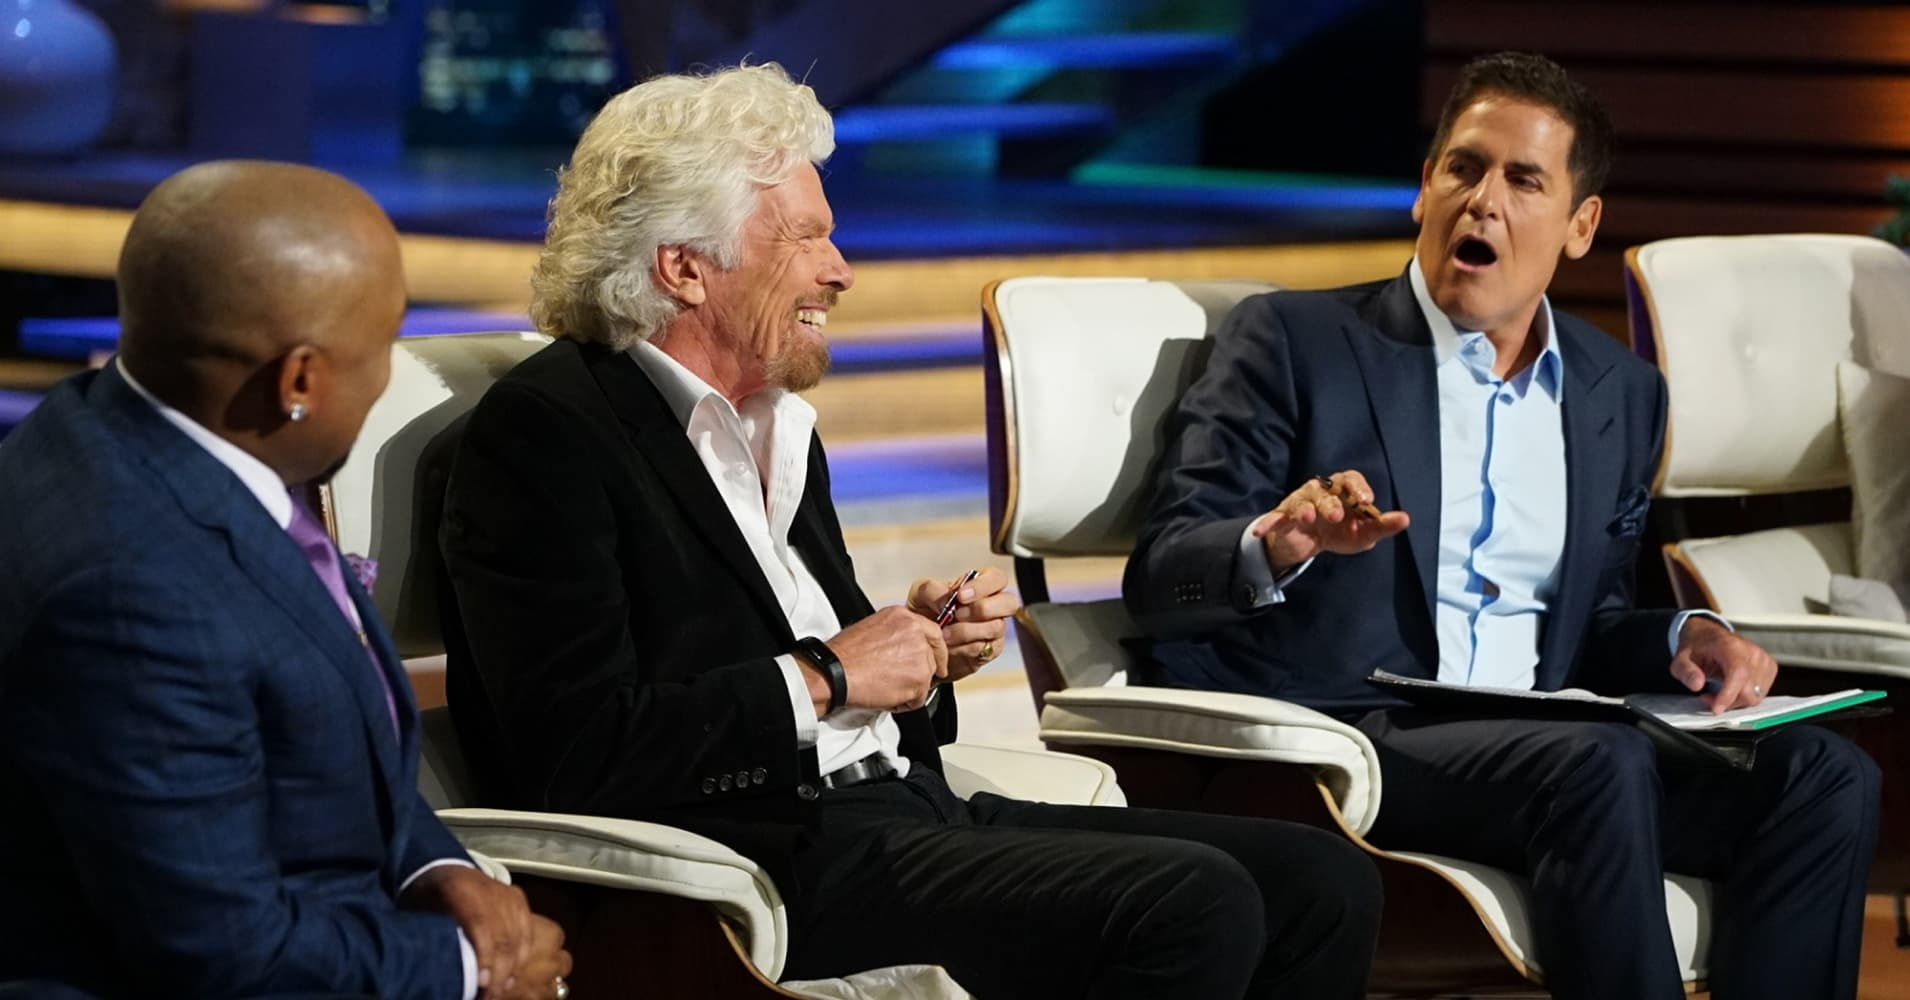 Shark Tank Episode 903, things get fiery in the Tank when Sir Richard Branson vents his frustration with Mark Cuban in a shocking, never-before-seen way.